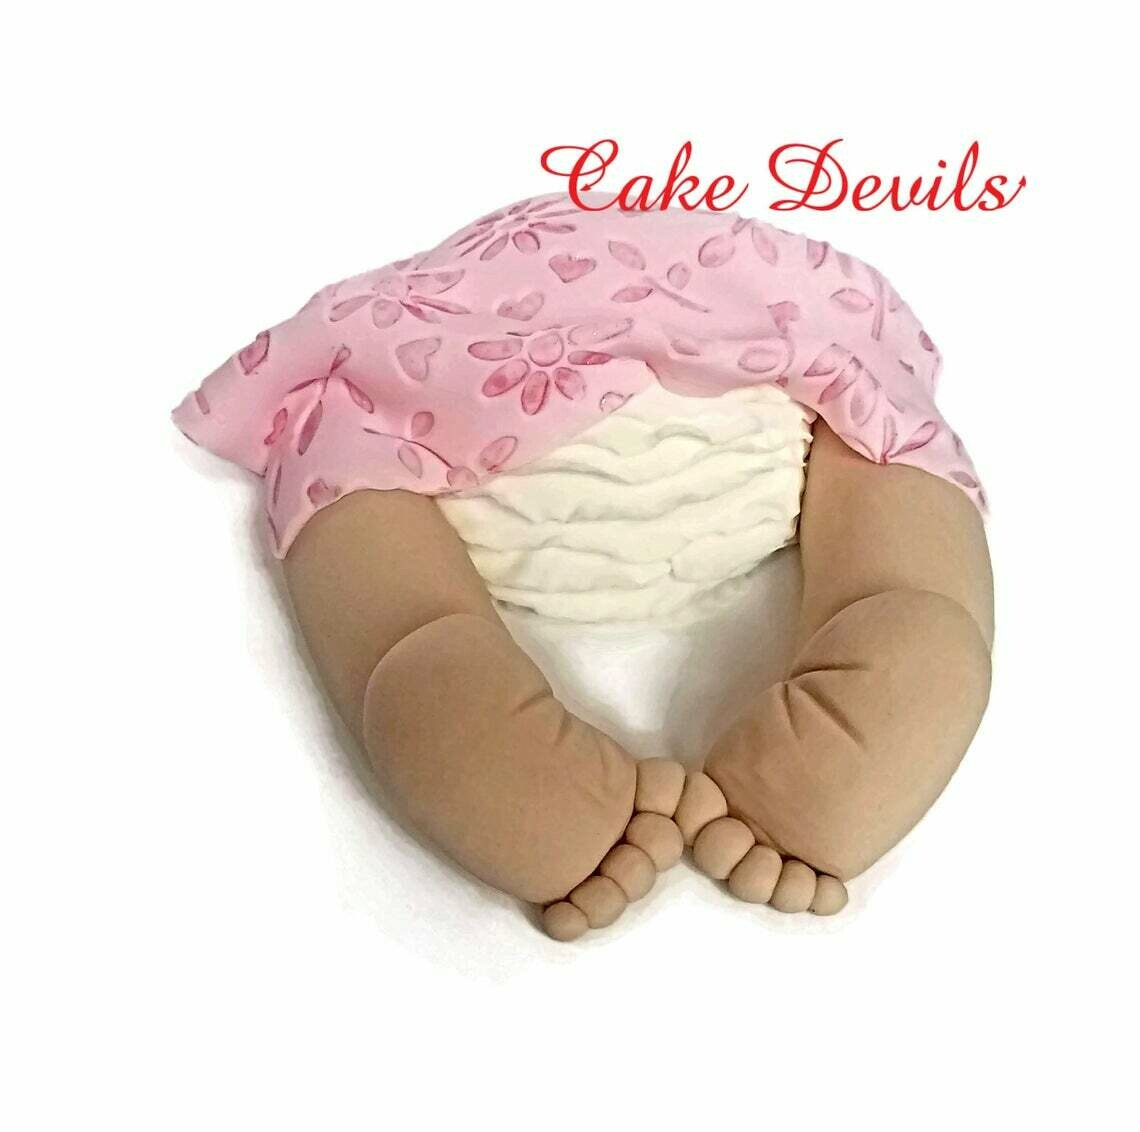 Ruffled Diaper Baby Butt Baby shower Cake Topper - Fondant Baby Butt, Handmade Edible Baby Shower Cake Decorations